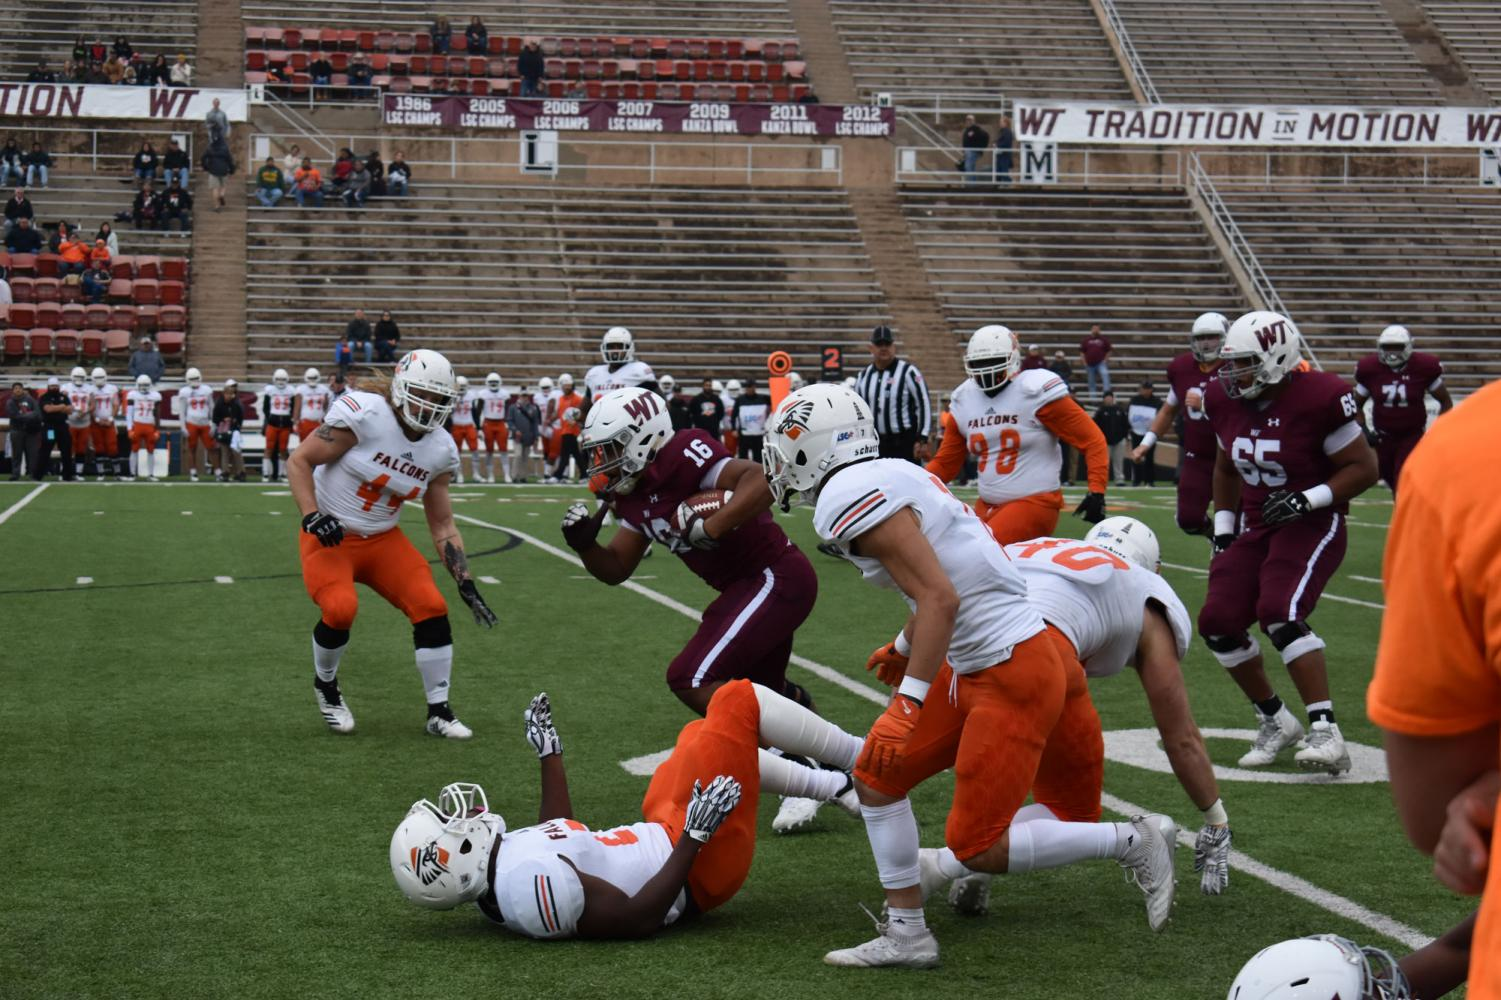 The WTAMU Buffs had a victorious homecoming with a 42-21 win against the UT- Permian Basin Falcons.